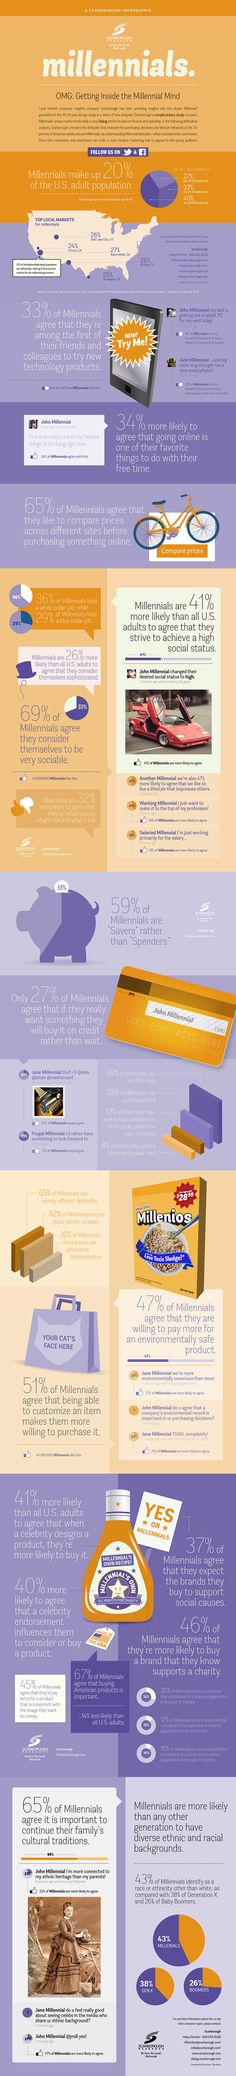 New Scarborough infographic uncovers the attitudes that motivate the purchasing decisions and lifestyle behaviors of #Millennials